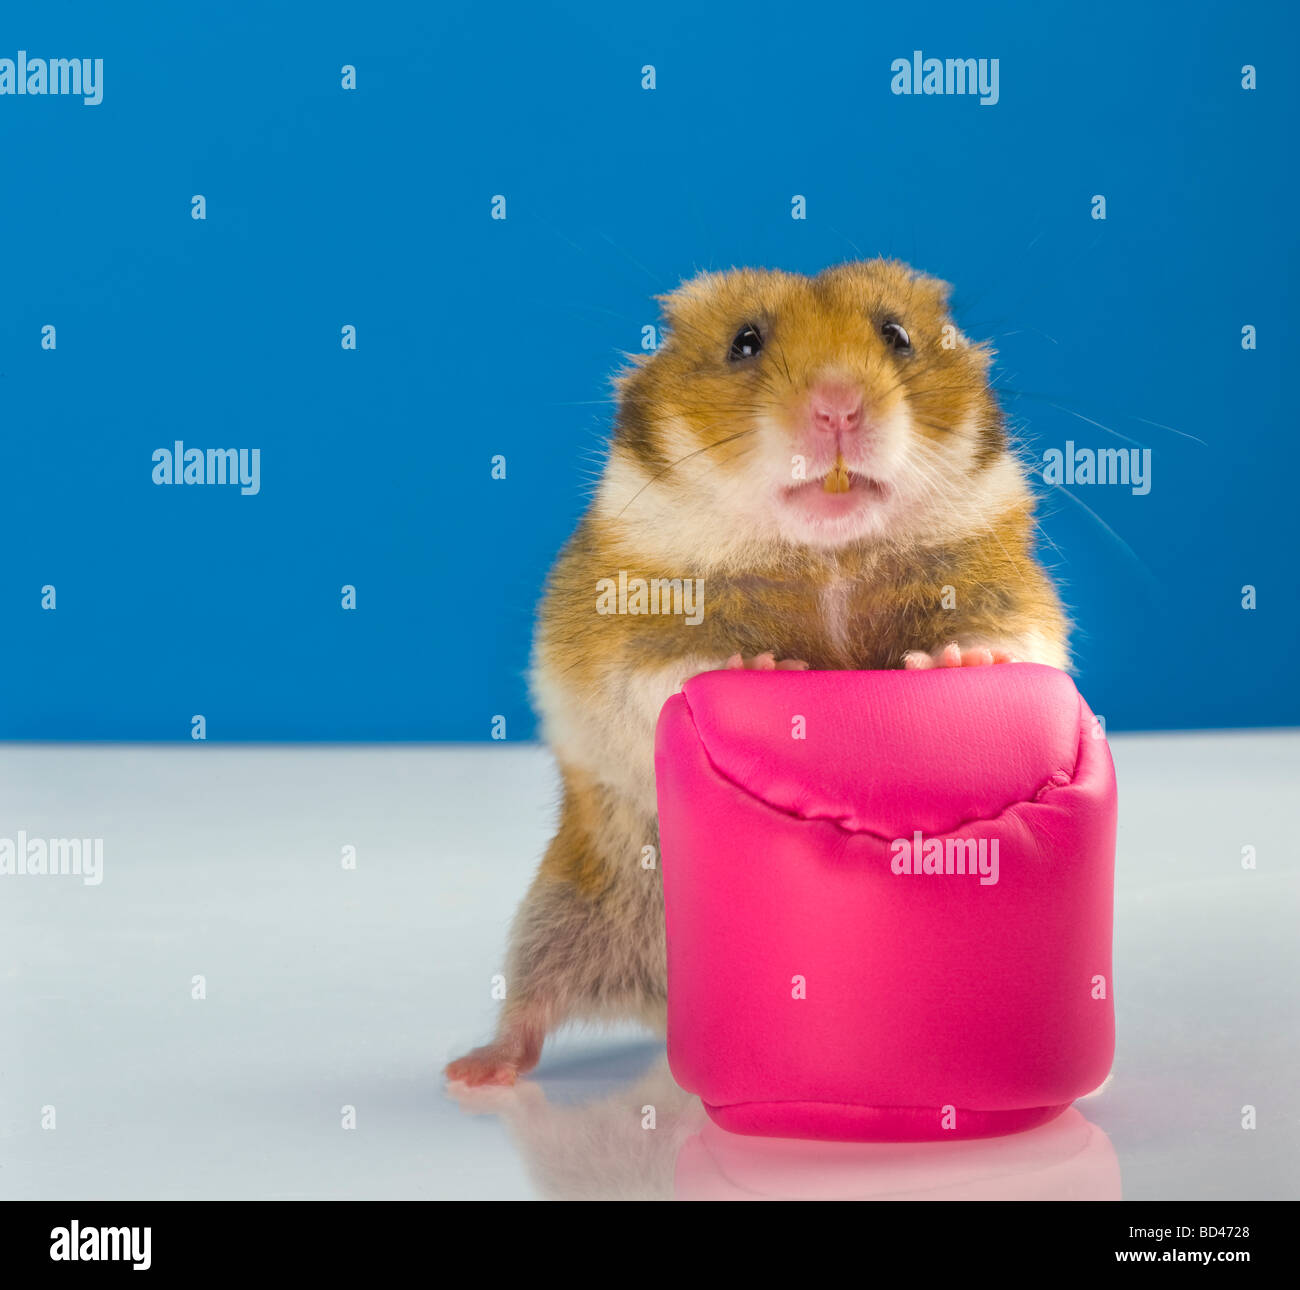 brown Hamster blue background goldhamster pink cushion pillow stand standing look looking rose blue plain background - Stock Image